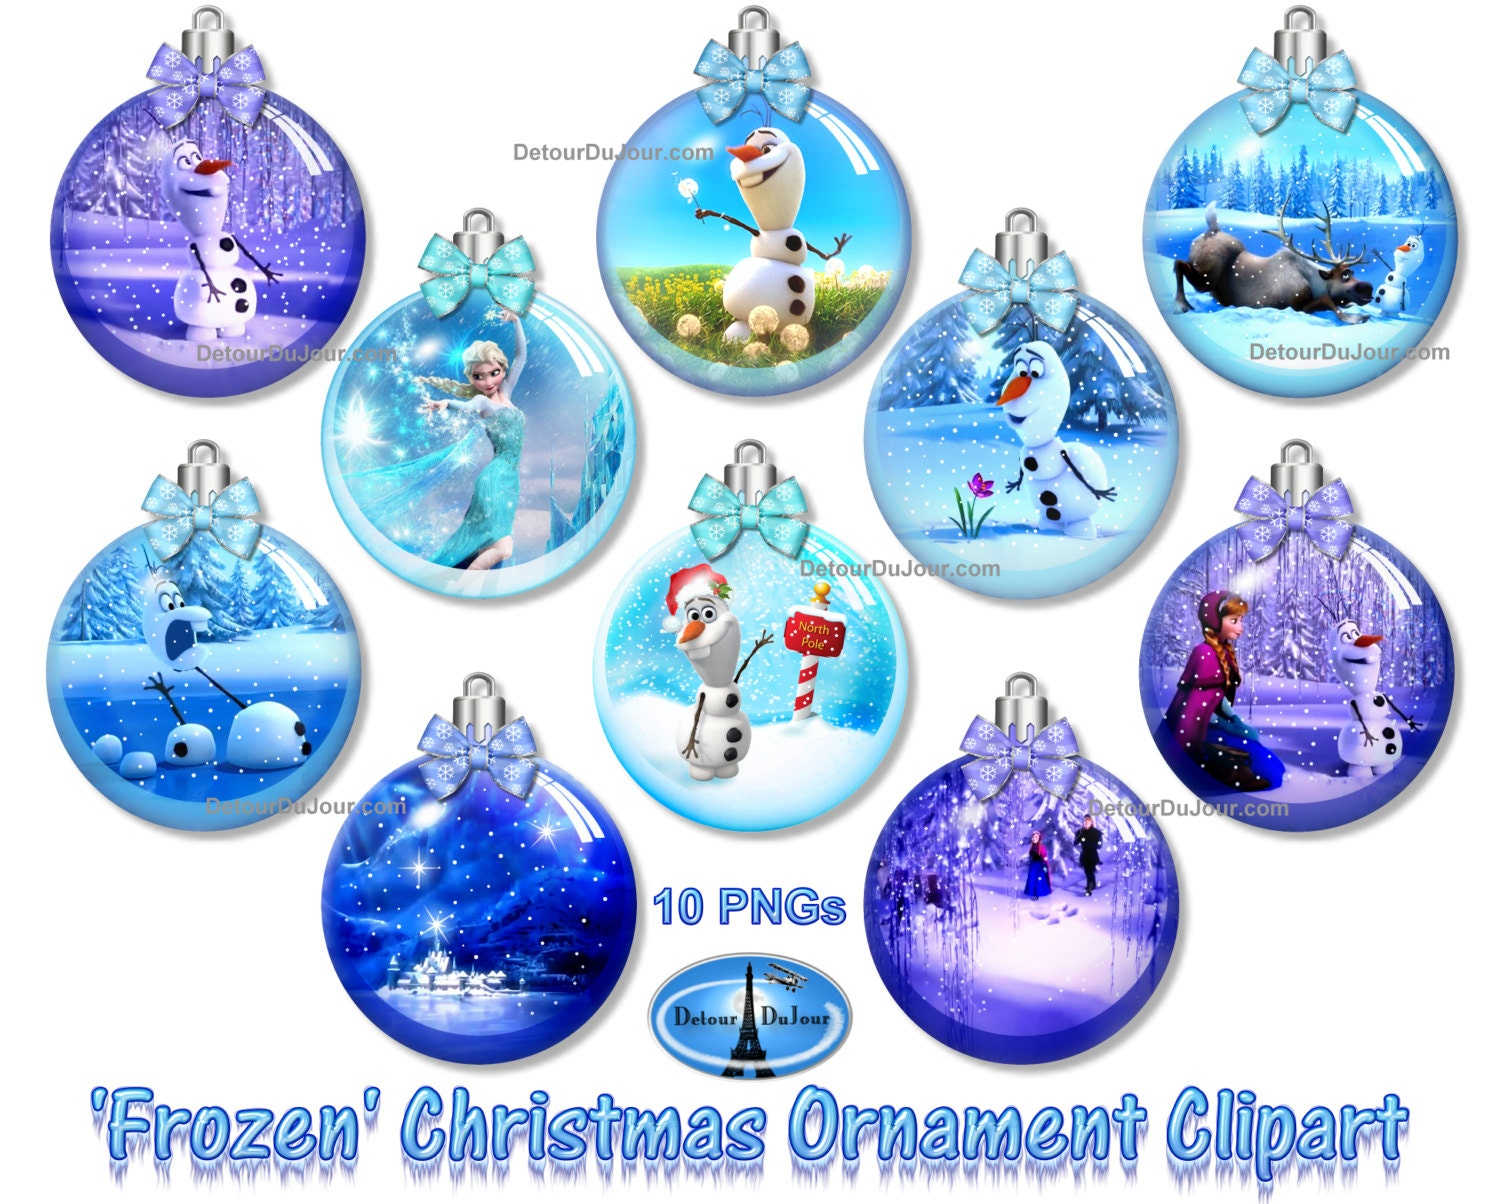 10 FROZEN Clipart Ornaments Olaf Christmas Ornament Clipart | Etsy